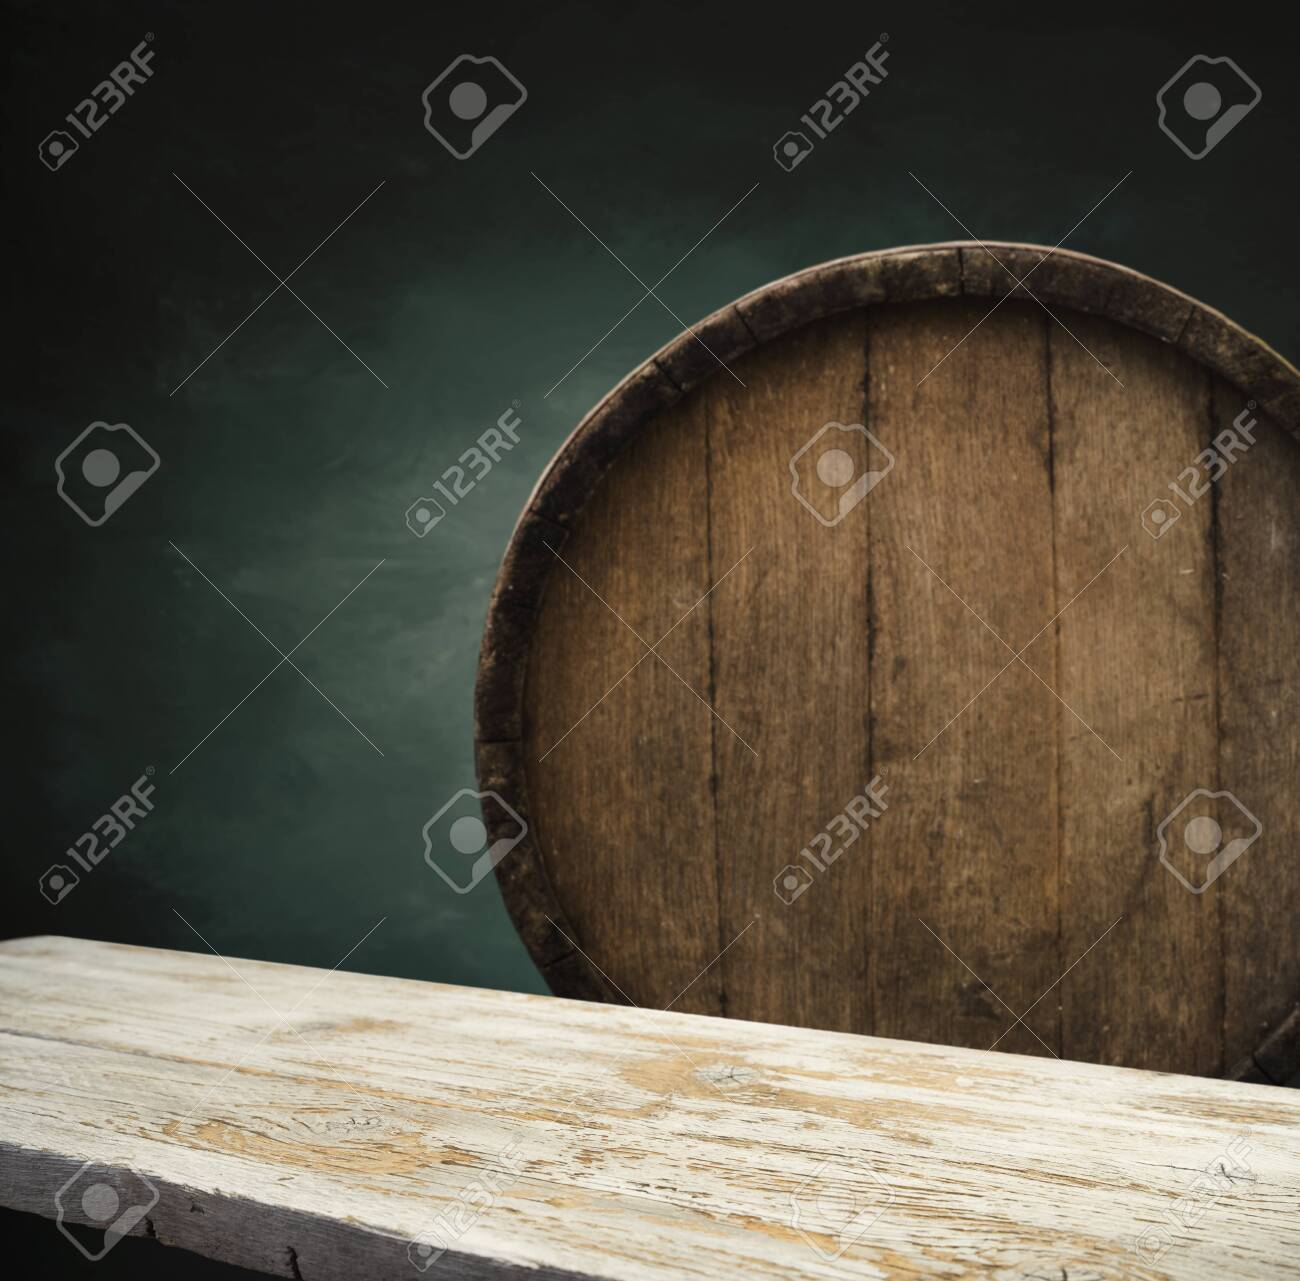 Wooden Barrel On A Table And Textured Background Stock Photo Picture And Royalty Free Image Image 140180611